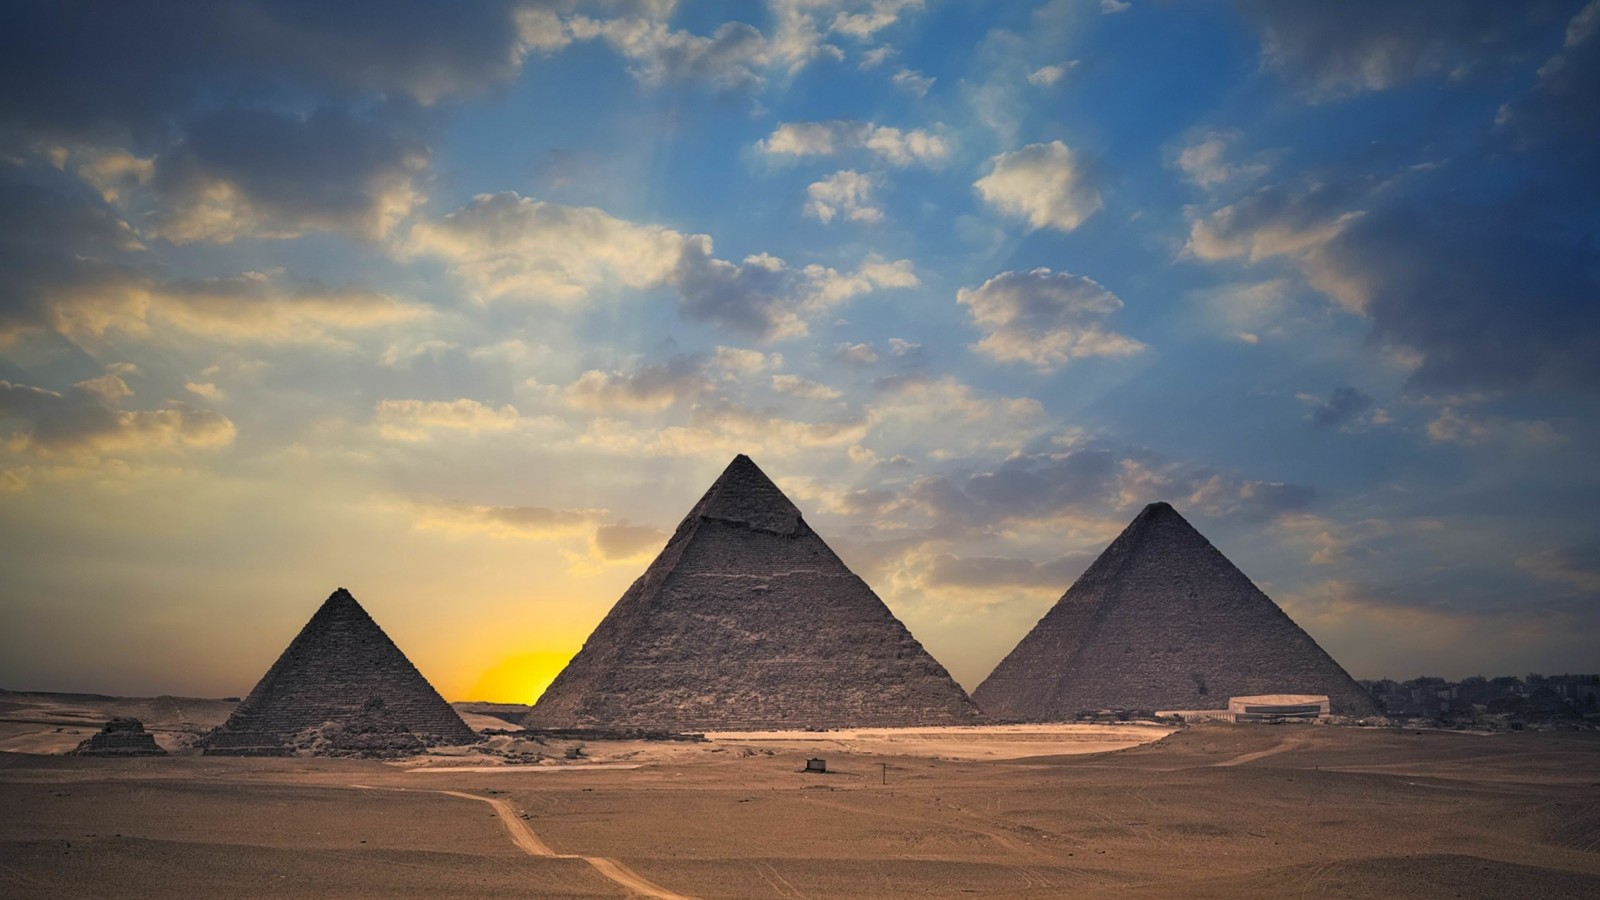 The Great Pyramids of Giza Wallpaper for Desktop 1600x900